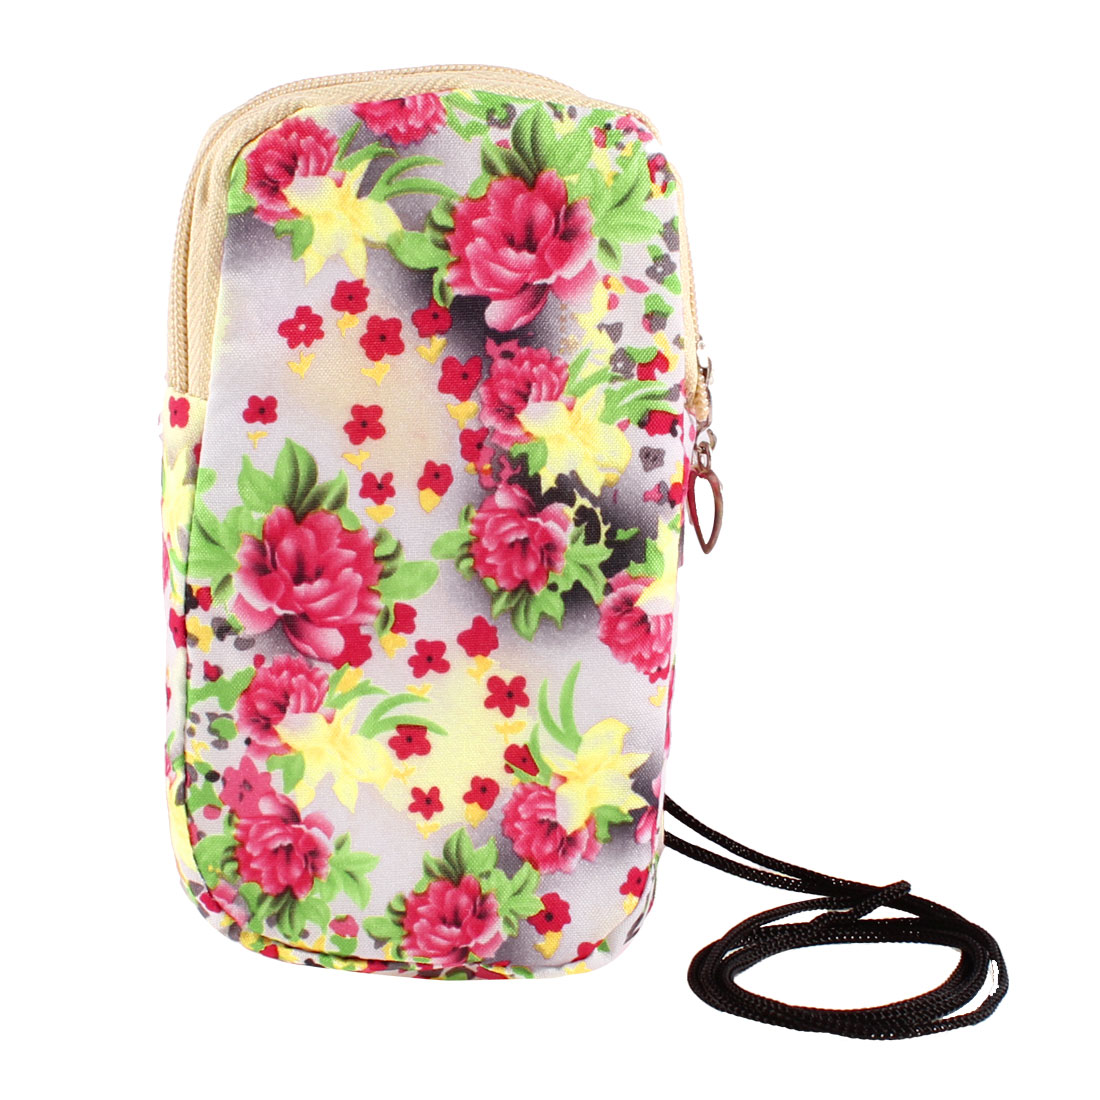 Watermelon Red Peony Flower Printed Dual Layers Zippered Phone Wrist Bag Holder